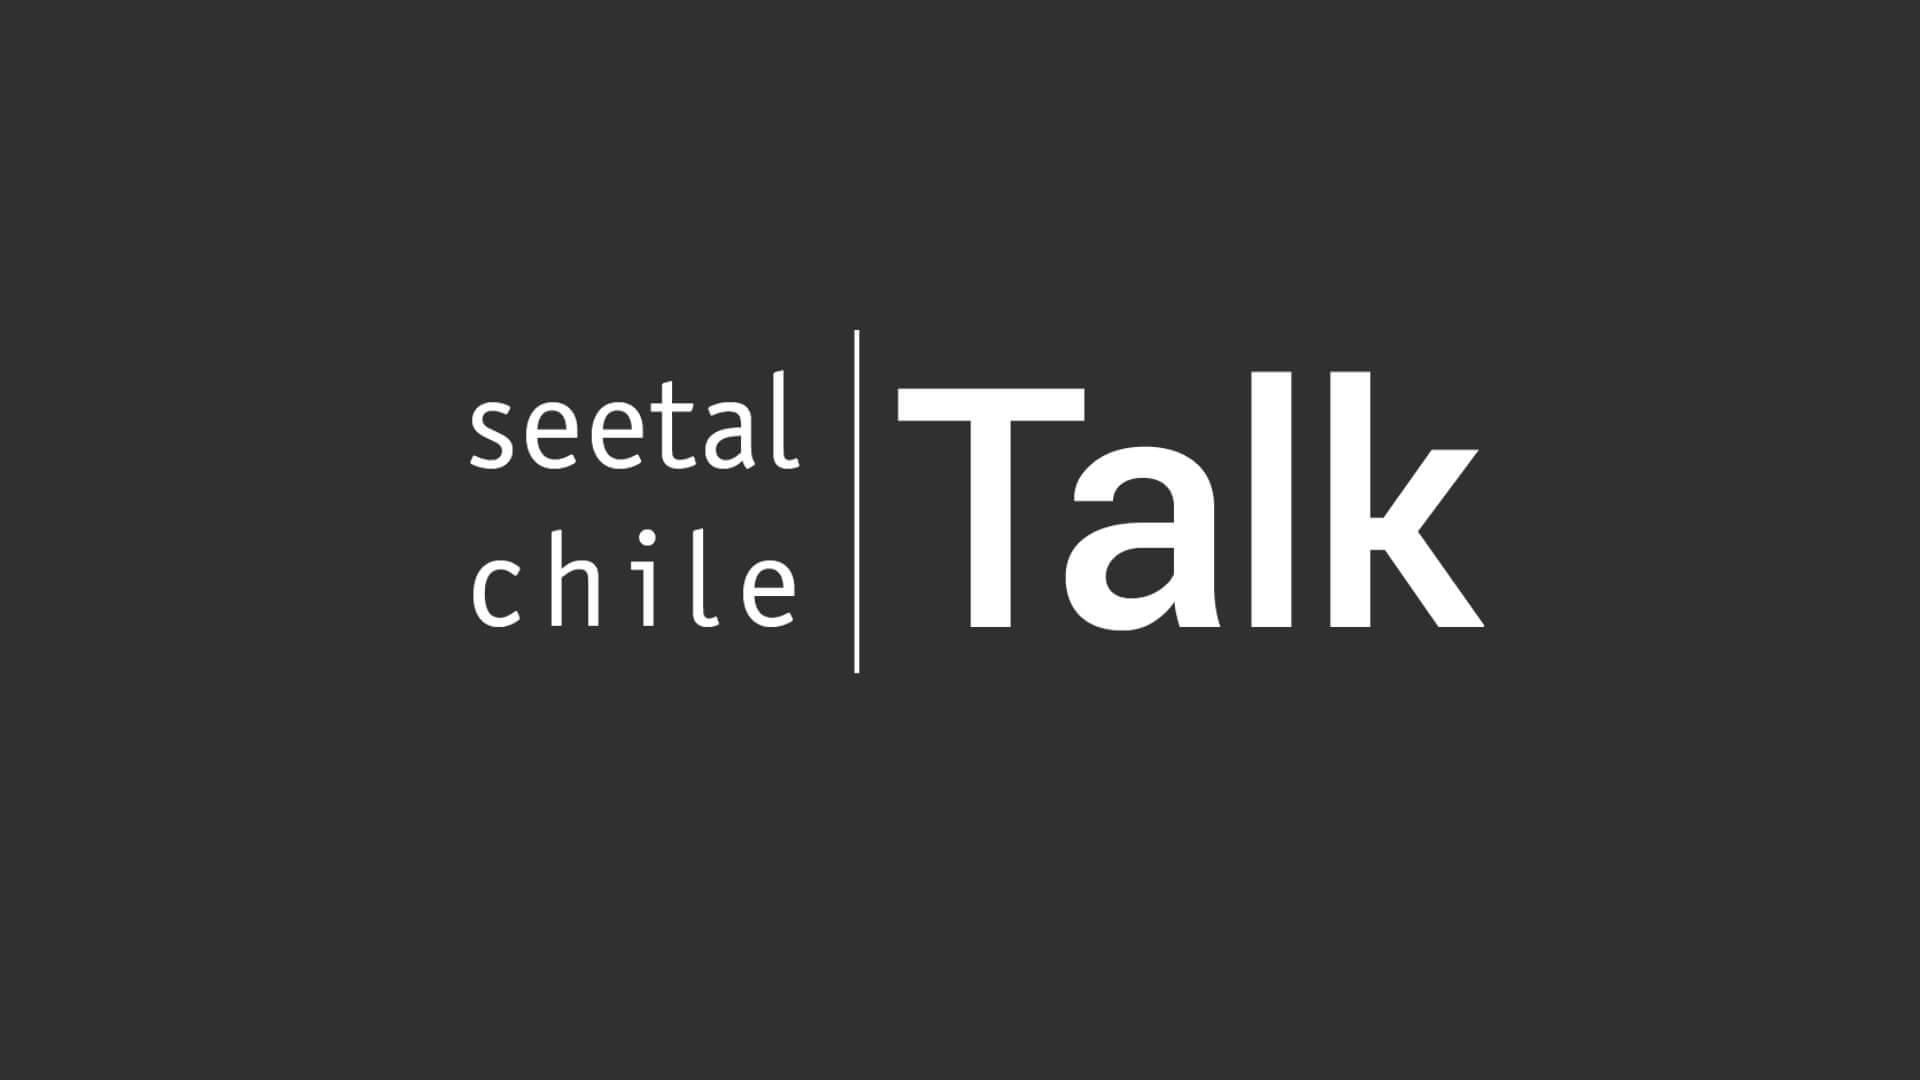 seetal chile Talk mit Werner Messmer